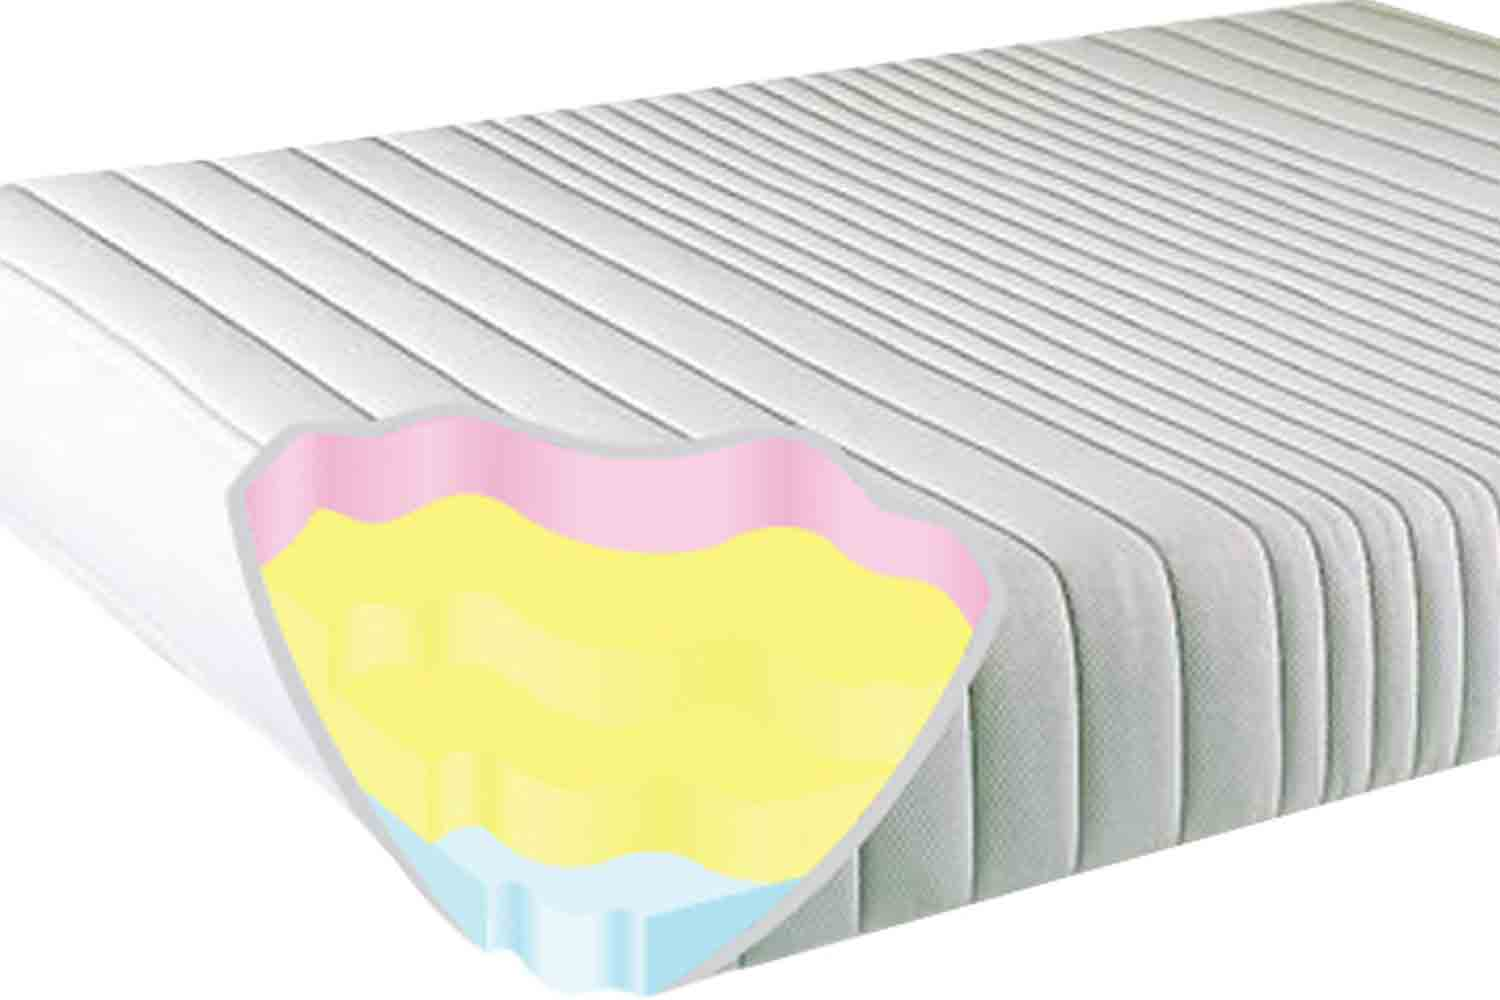 Memory Foam Mattress Made For Electric